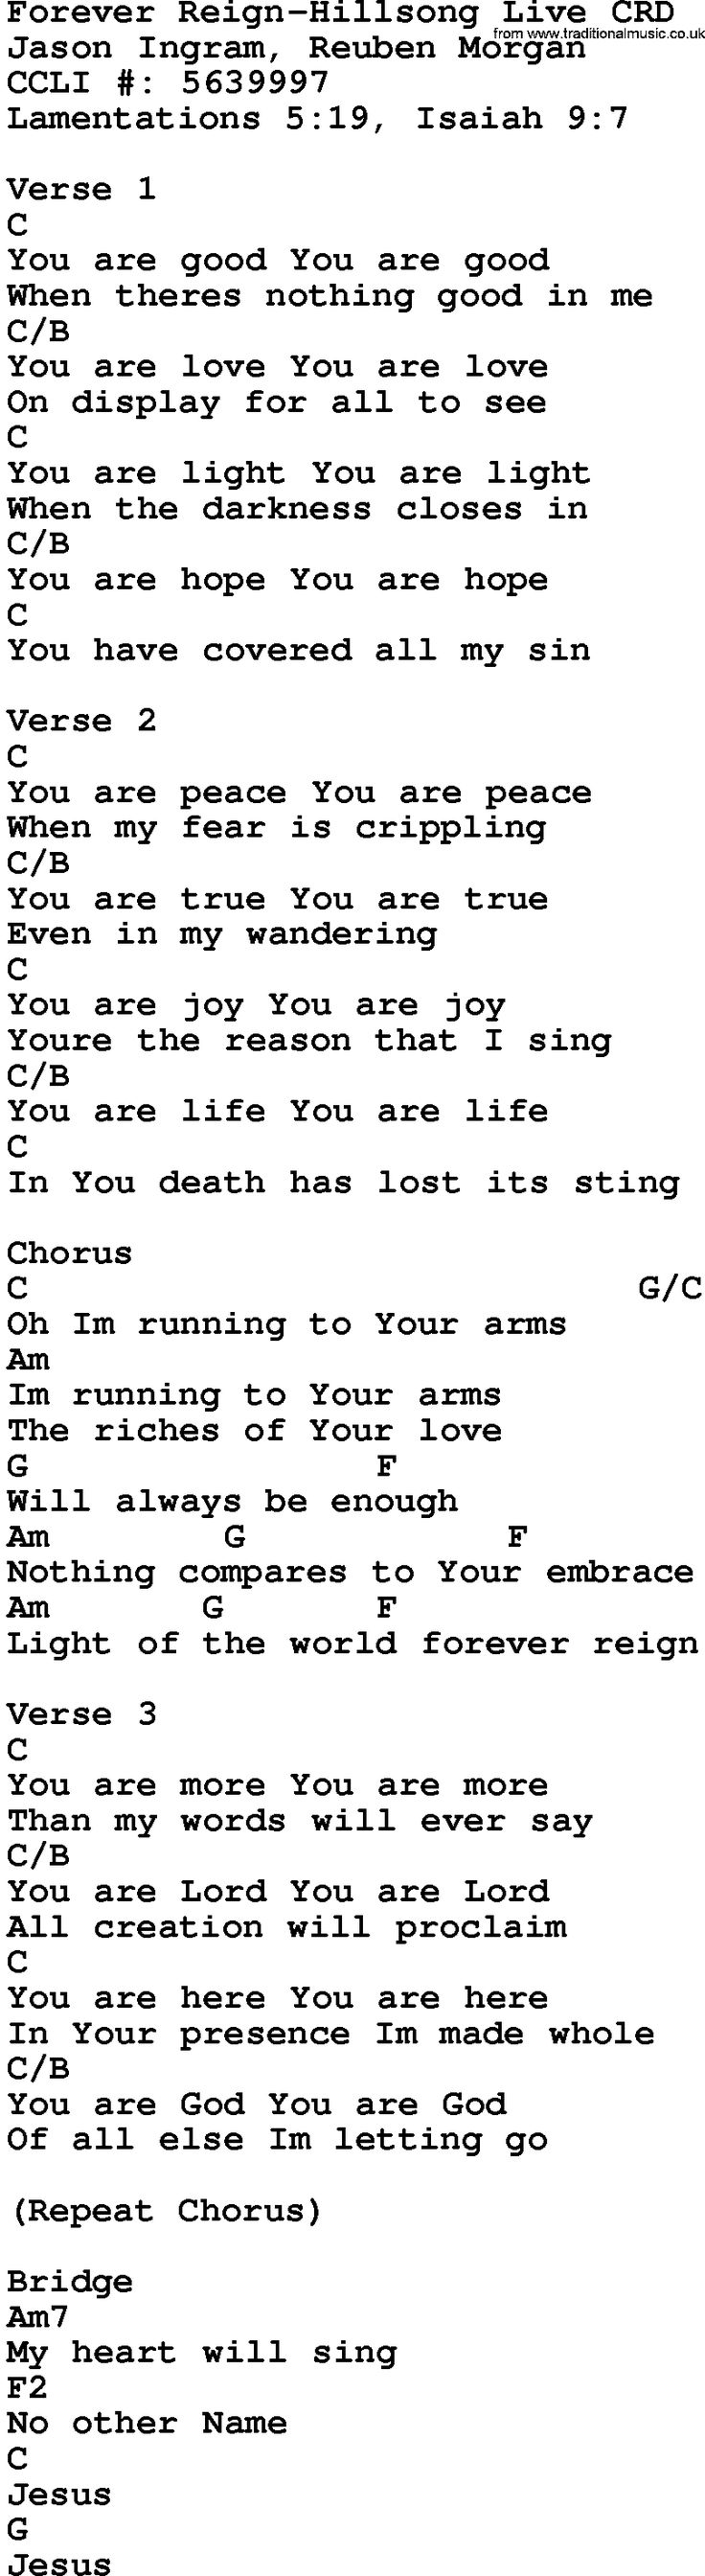 CHRISTIAN MUSIC LYRICS | SongLyrics.com